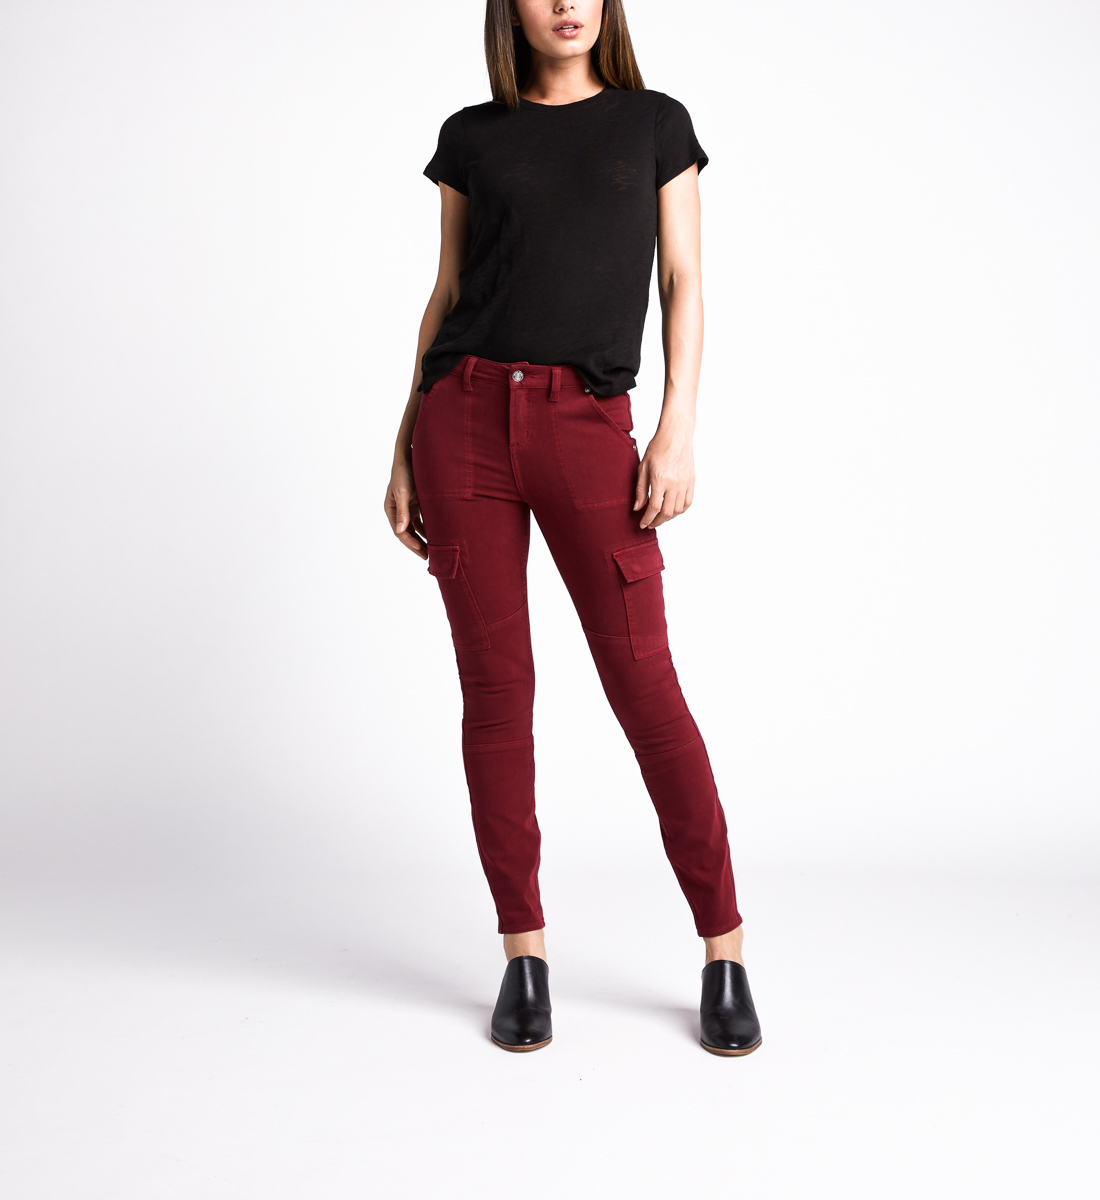 Cargo Mid Rise Skinny Leg Jeans,Red Alt Image 1